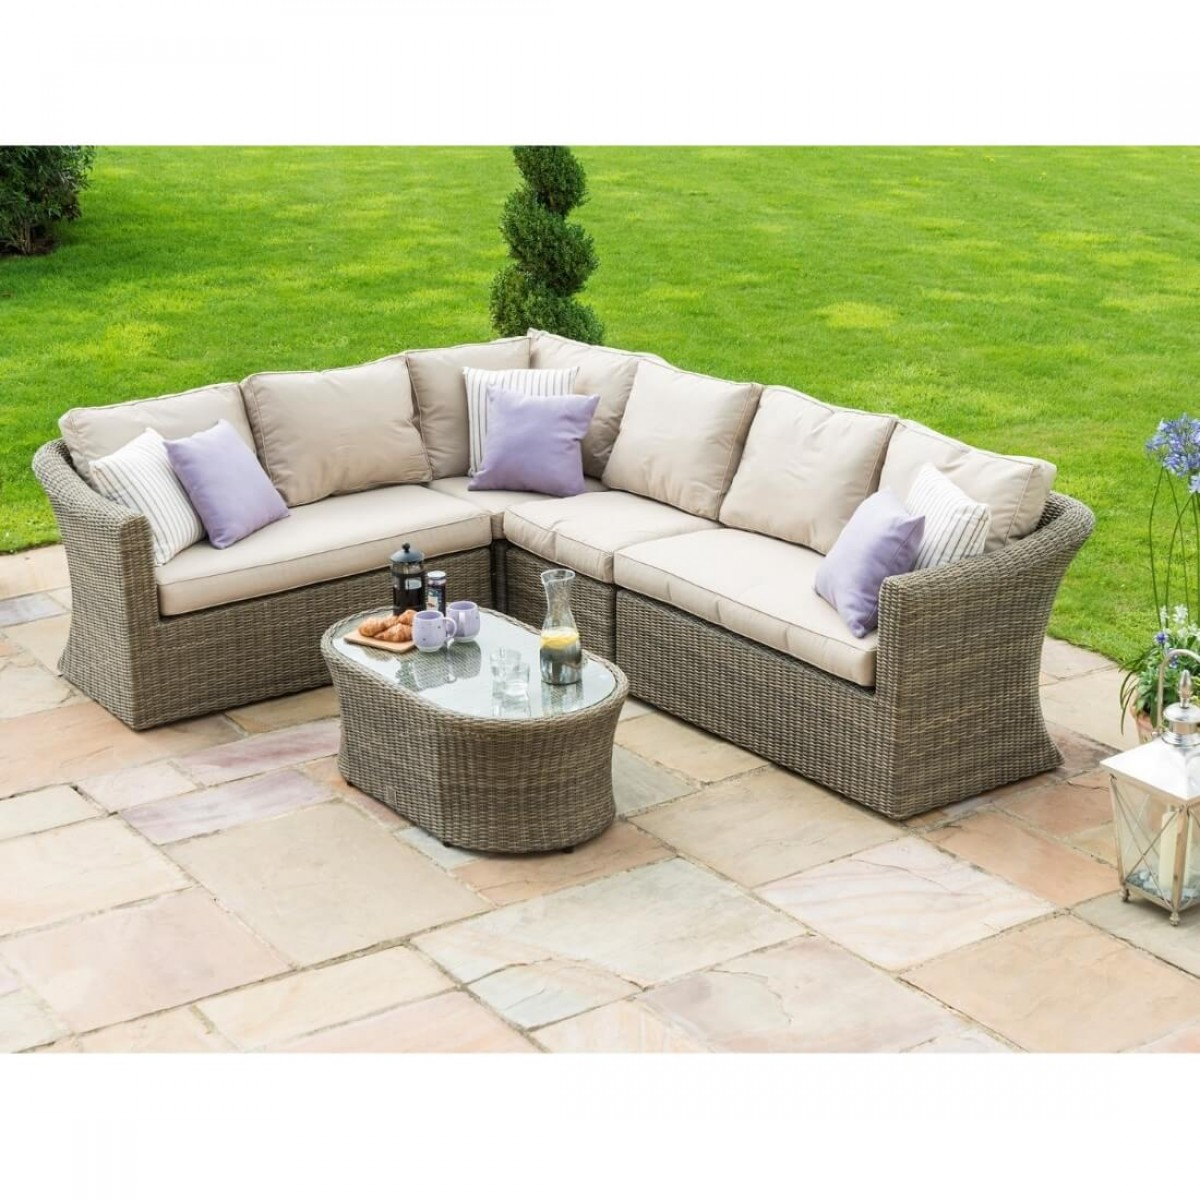 Alexandria Rattan Corner Sofa Reviews: Maze Rattan Furniture Winchester Large Corner Sofa Set WIN